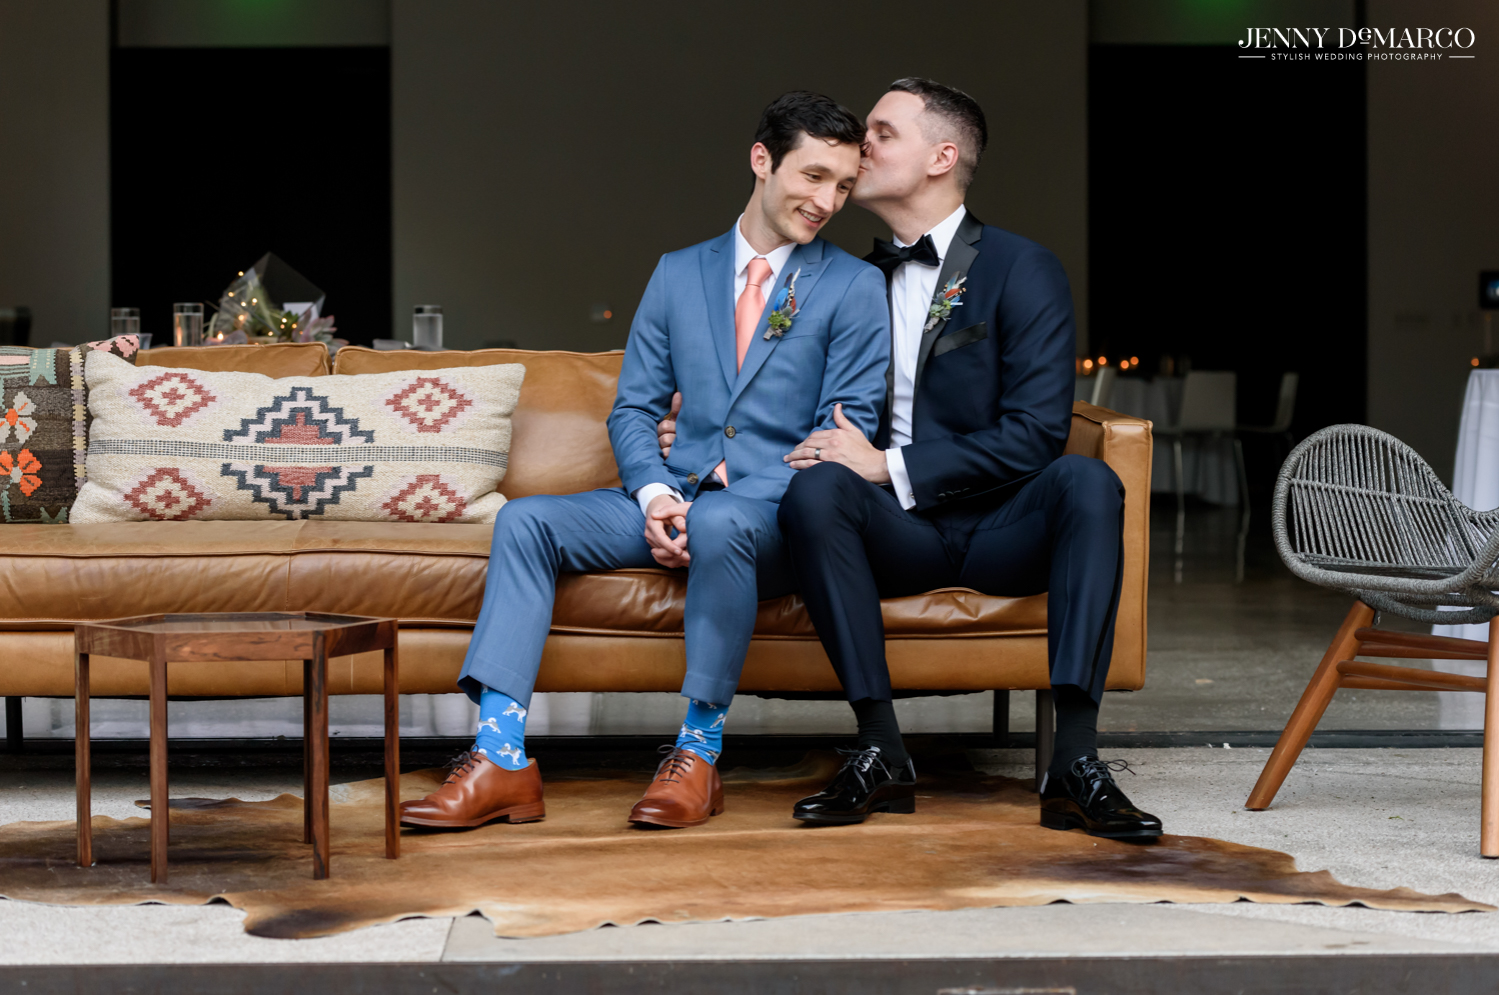 Grooms sitting on couch while groom on right kisses the forehead of groom on left